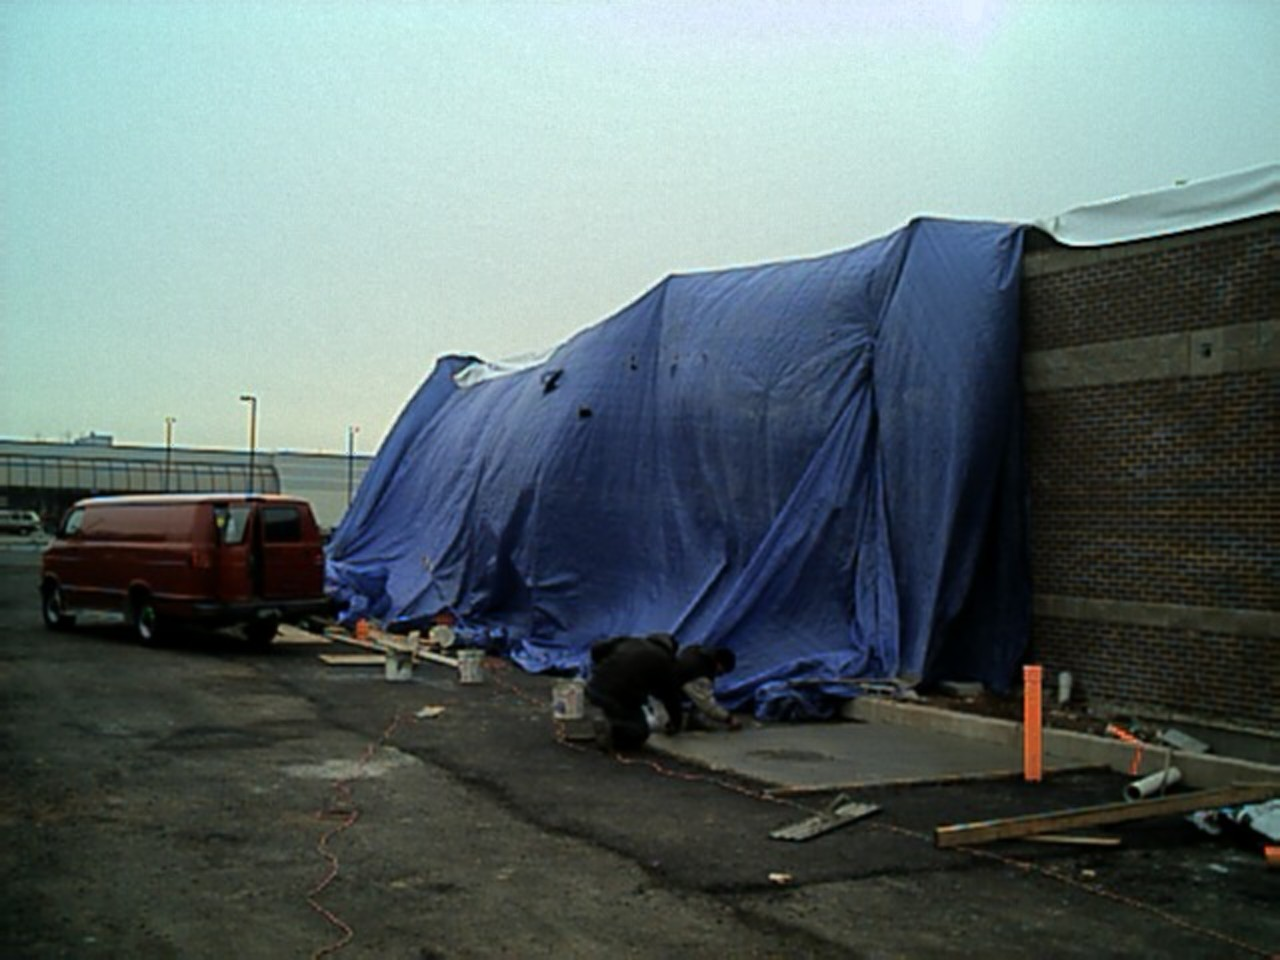 Better view of the right side. We are using three 60' X 40' tarps!!